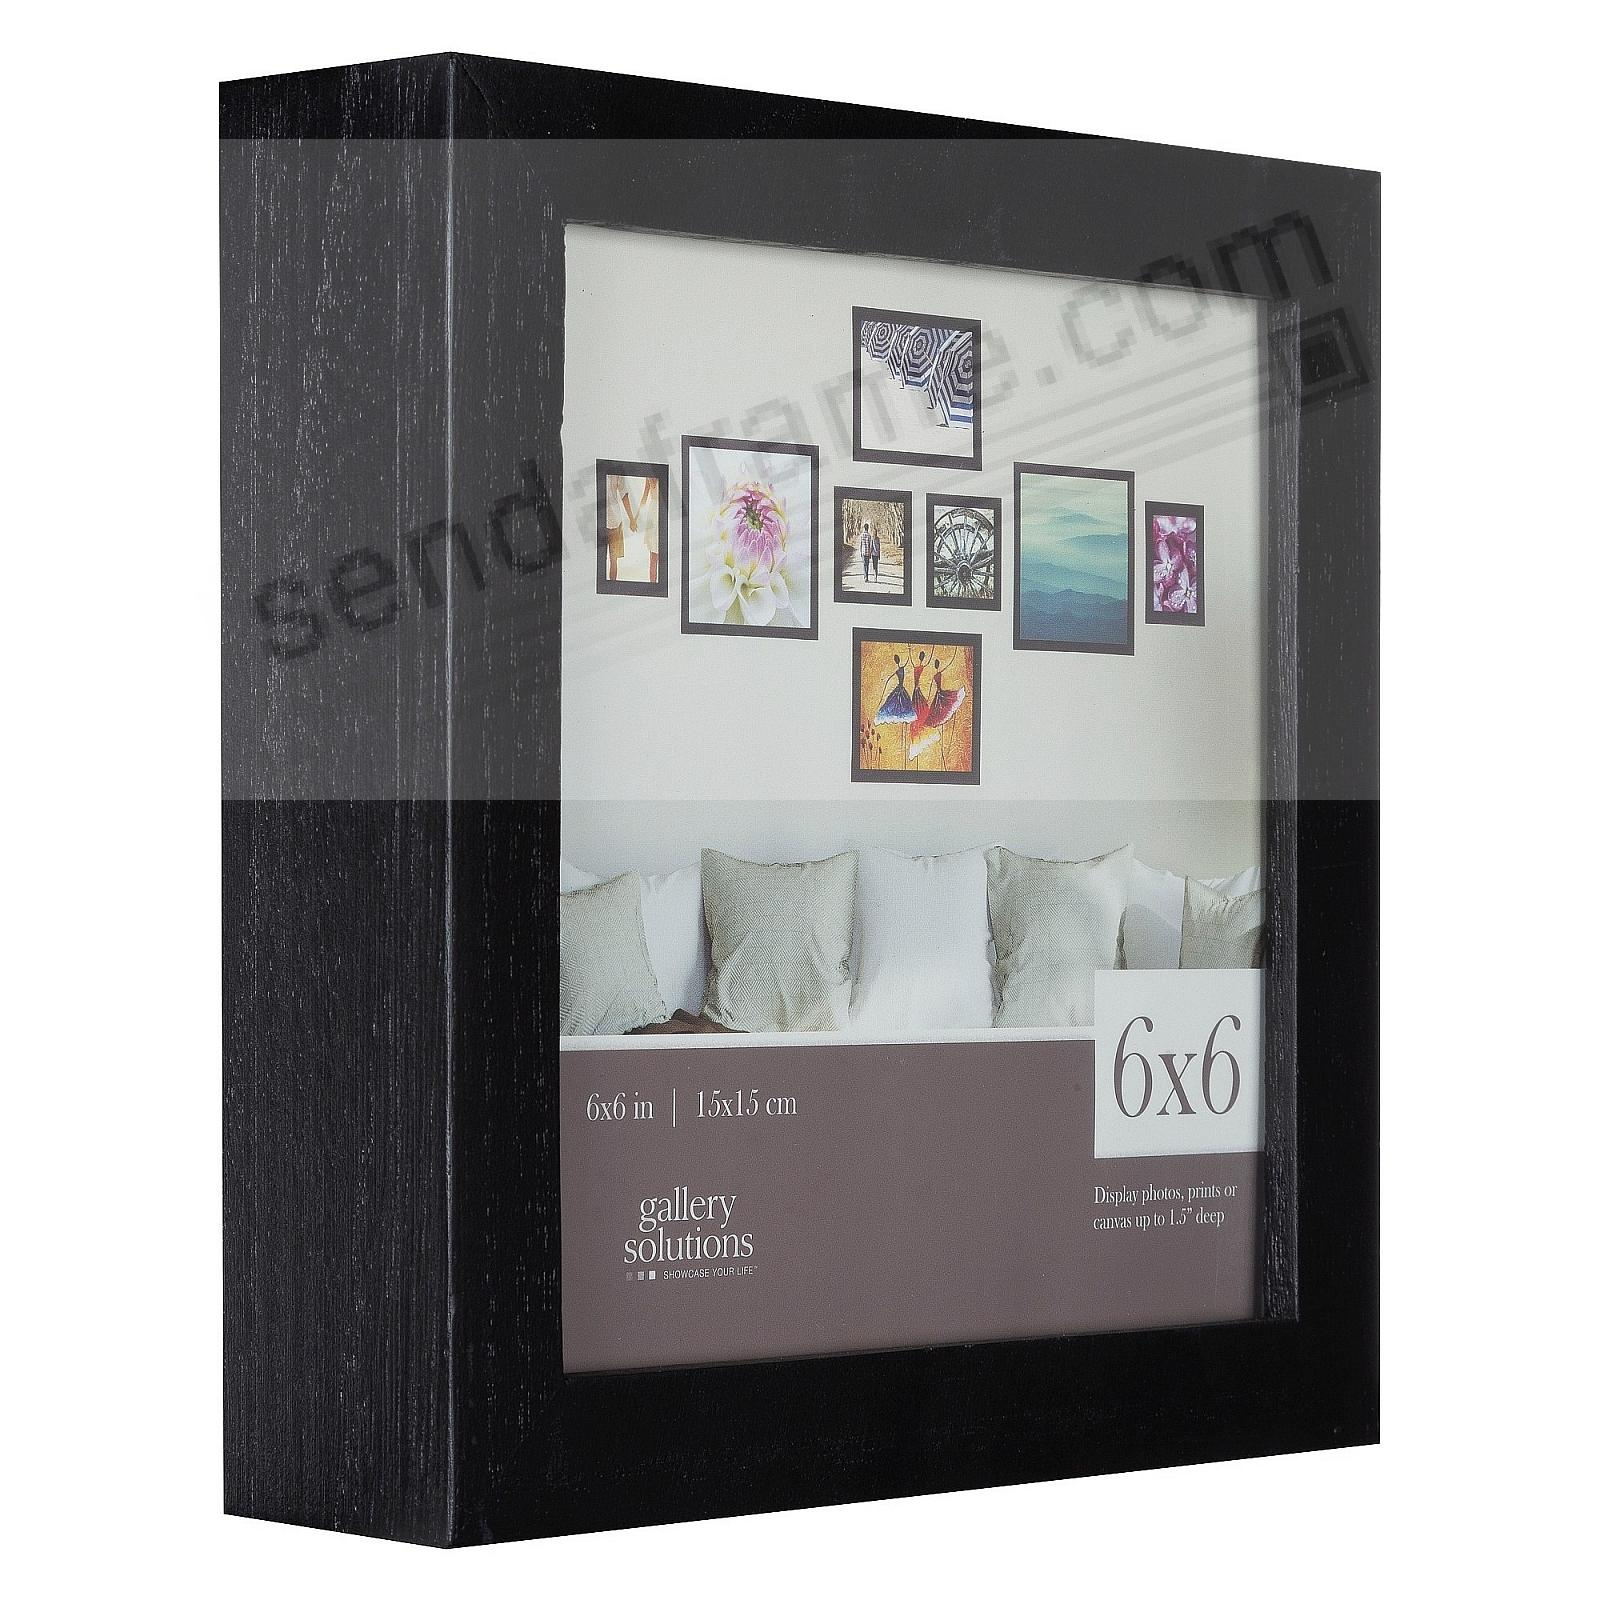 BLACK GALLERY 6x6 frame by Gallery Solutions®